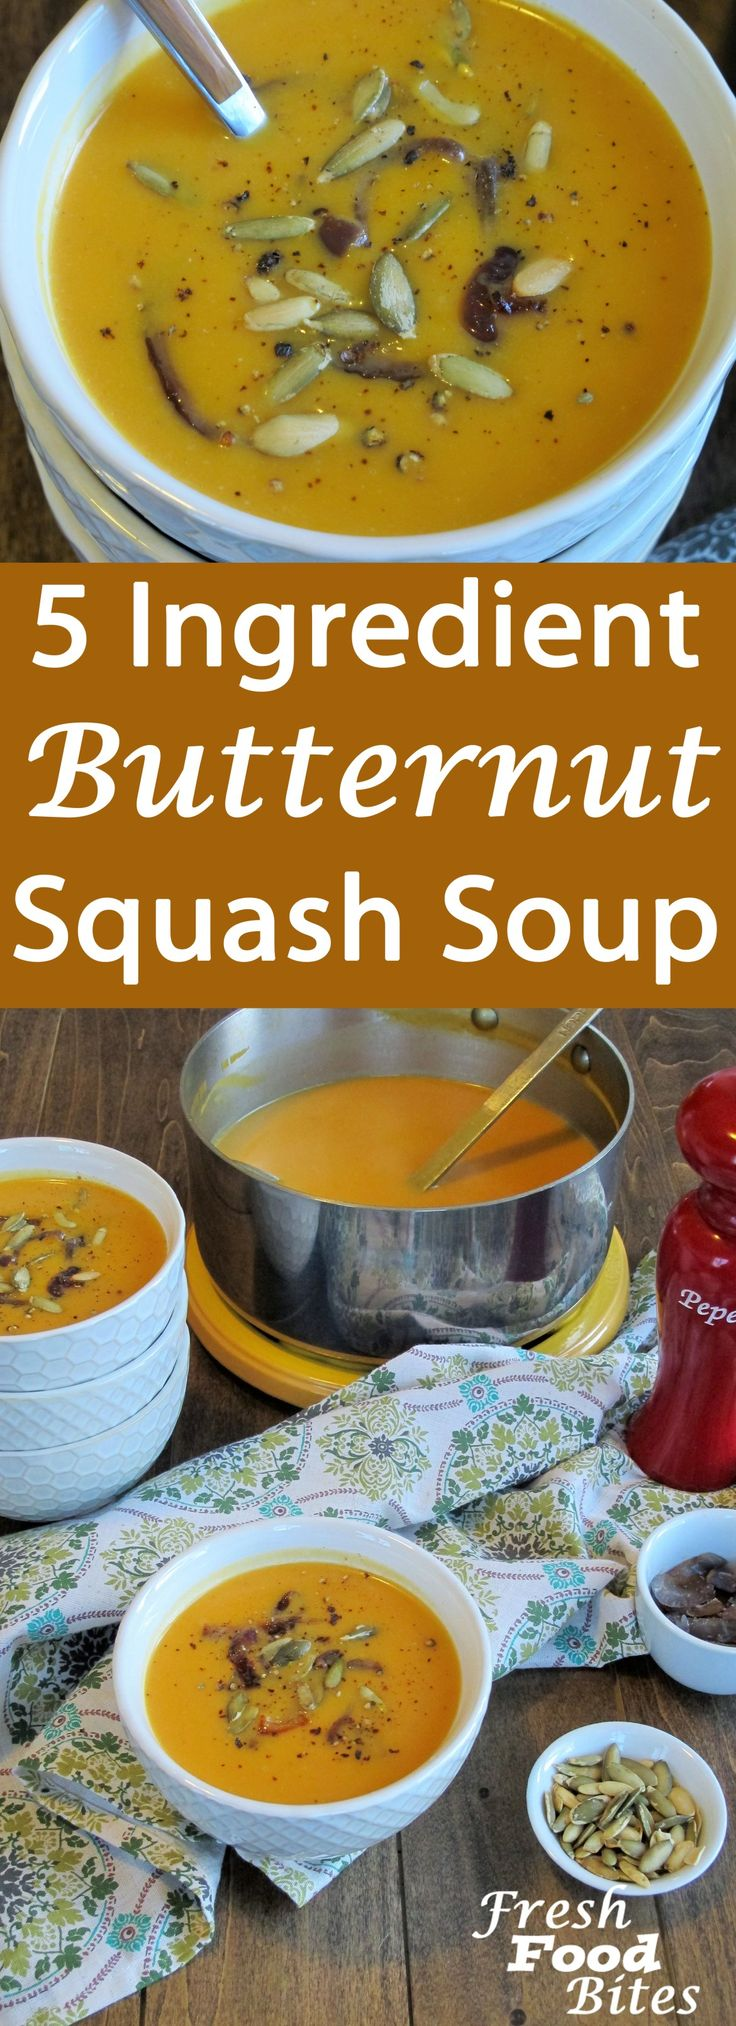 This silky, smooth 5 Ingredient Butternut Squash Soup is a perfect way to warm up on a chilly day. With just 5 ingredients and minimal effort, you'll have the soup whipped together in no time. Use a traditional blender or immersion blender to puree the soup into a thick, creamy soup that doesn't rely on added cream or thickeners.